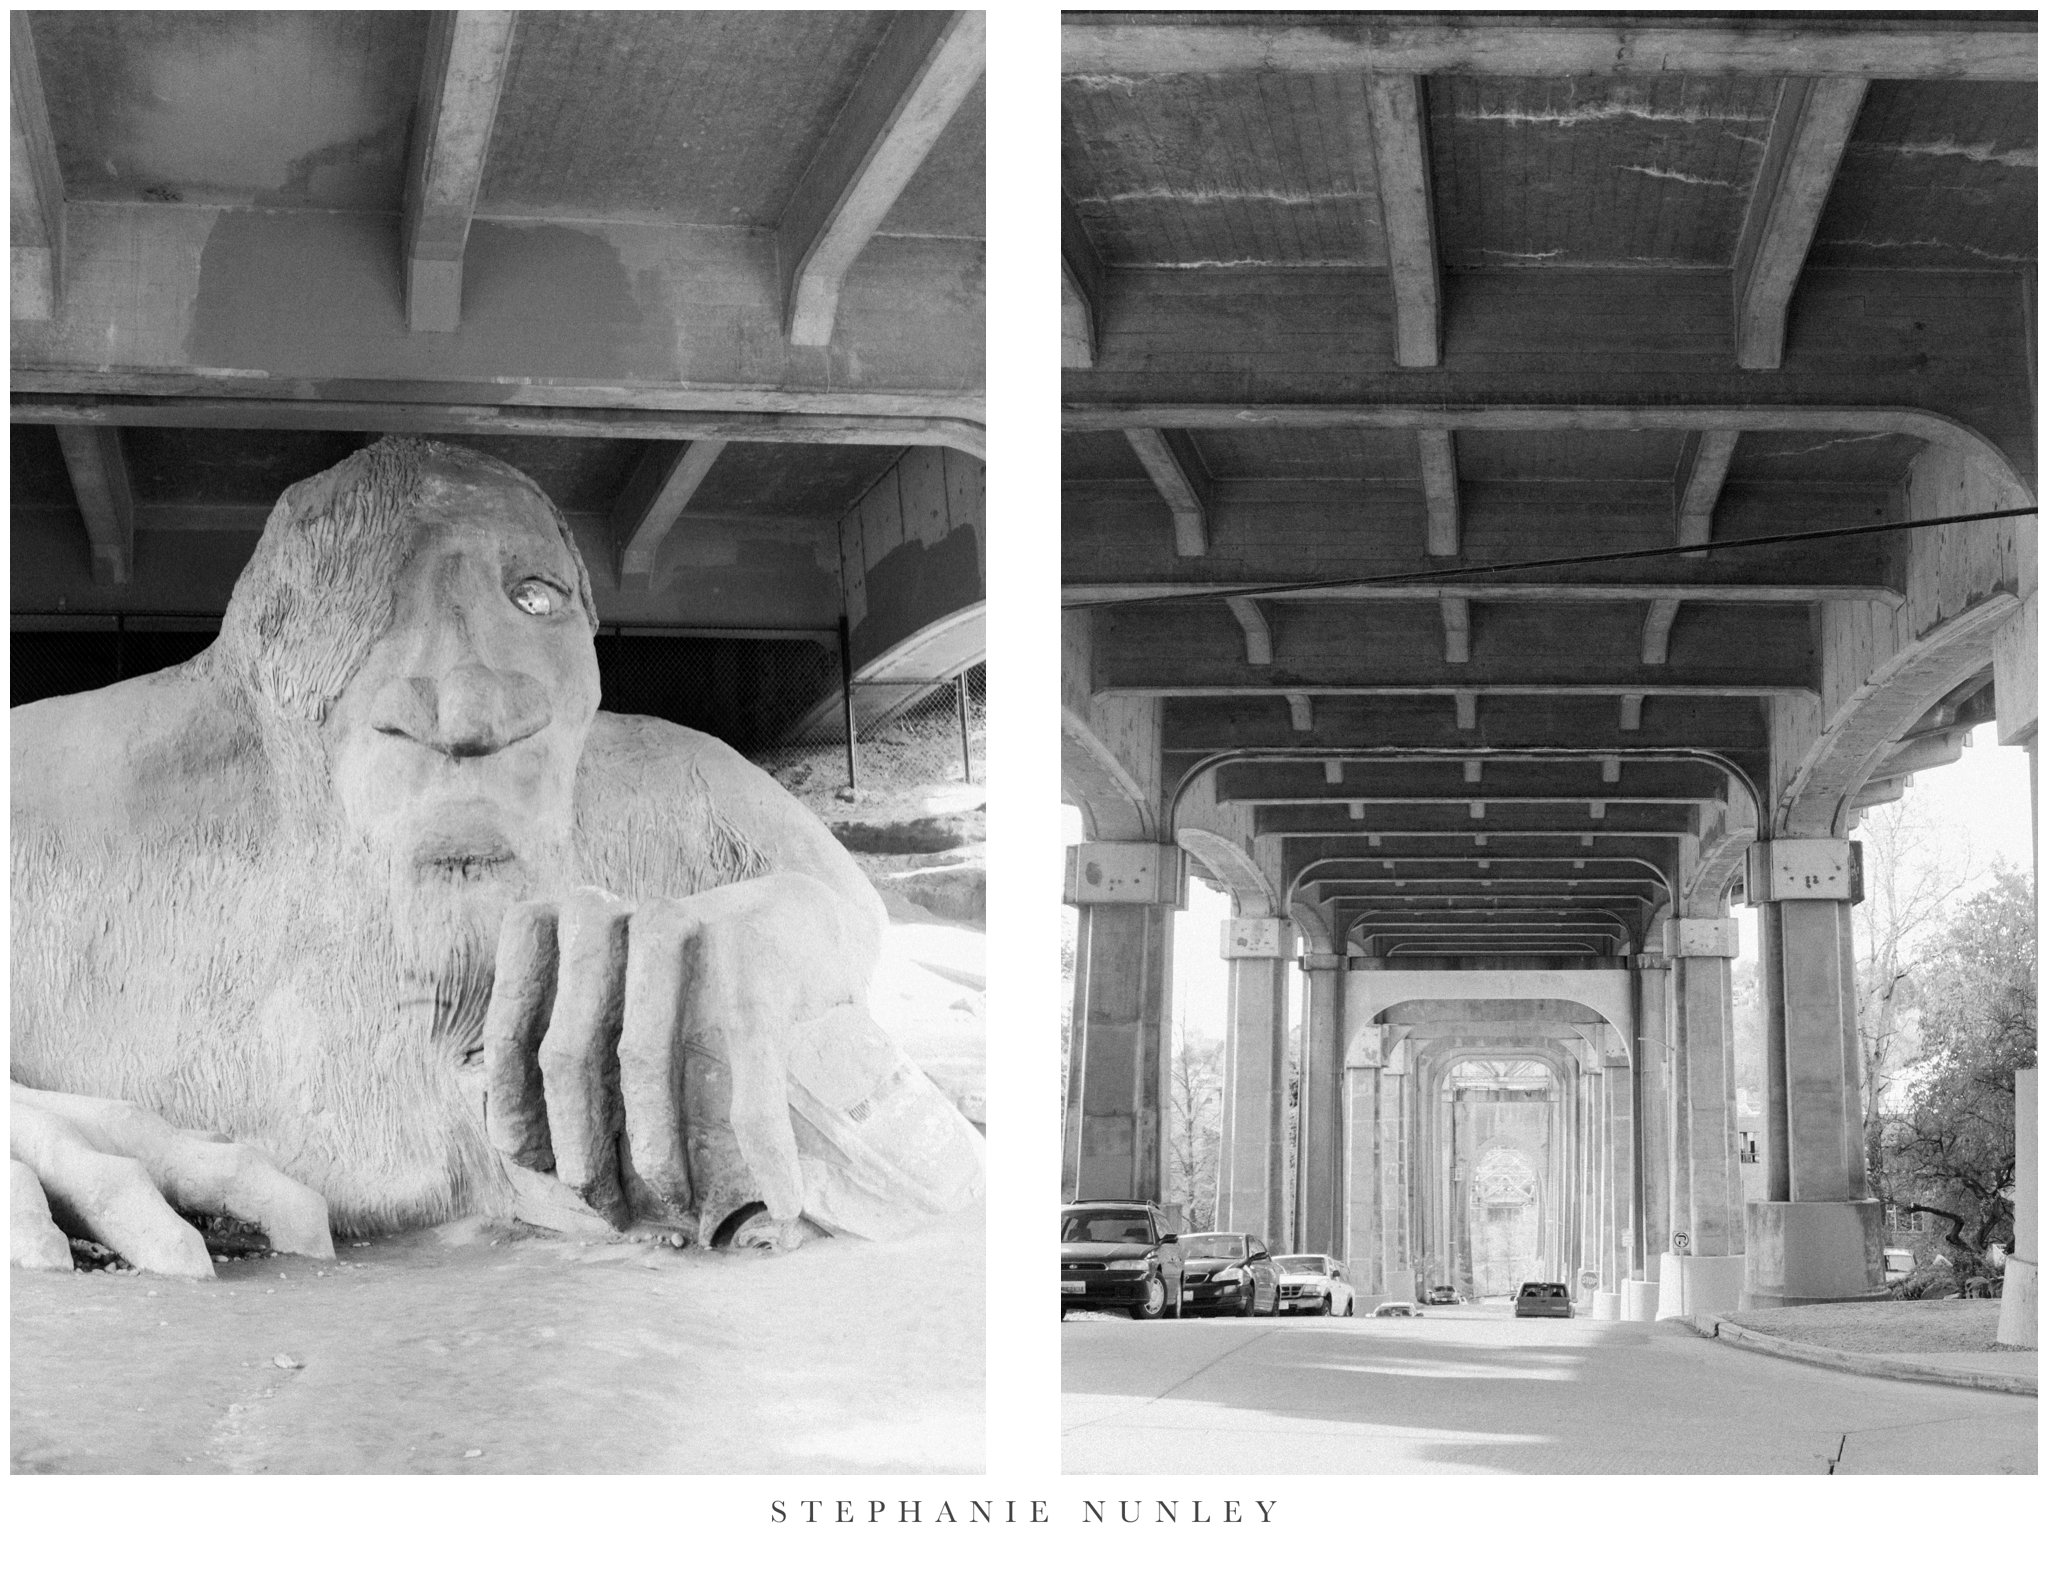 The Troll Under the Bridge - On Sunday, while we were walking from our airbnb to the store to purchase bus passes, we stumbled across this. I didn't even know it was a thing.